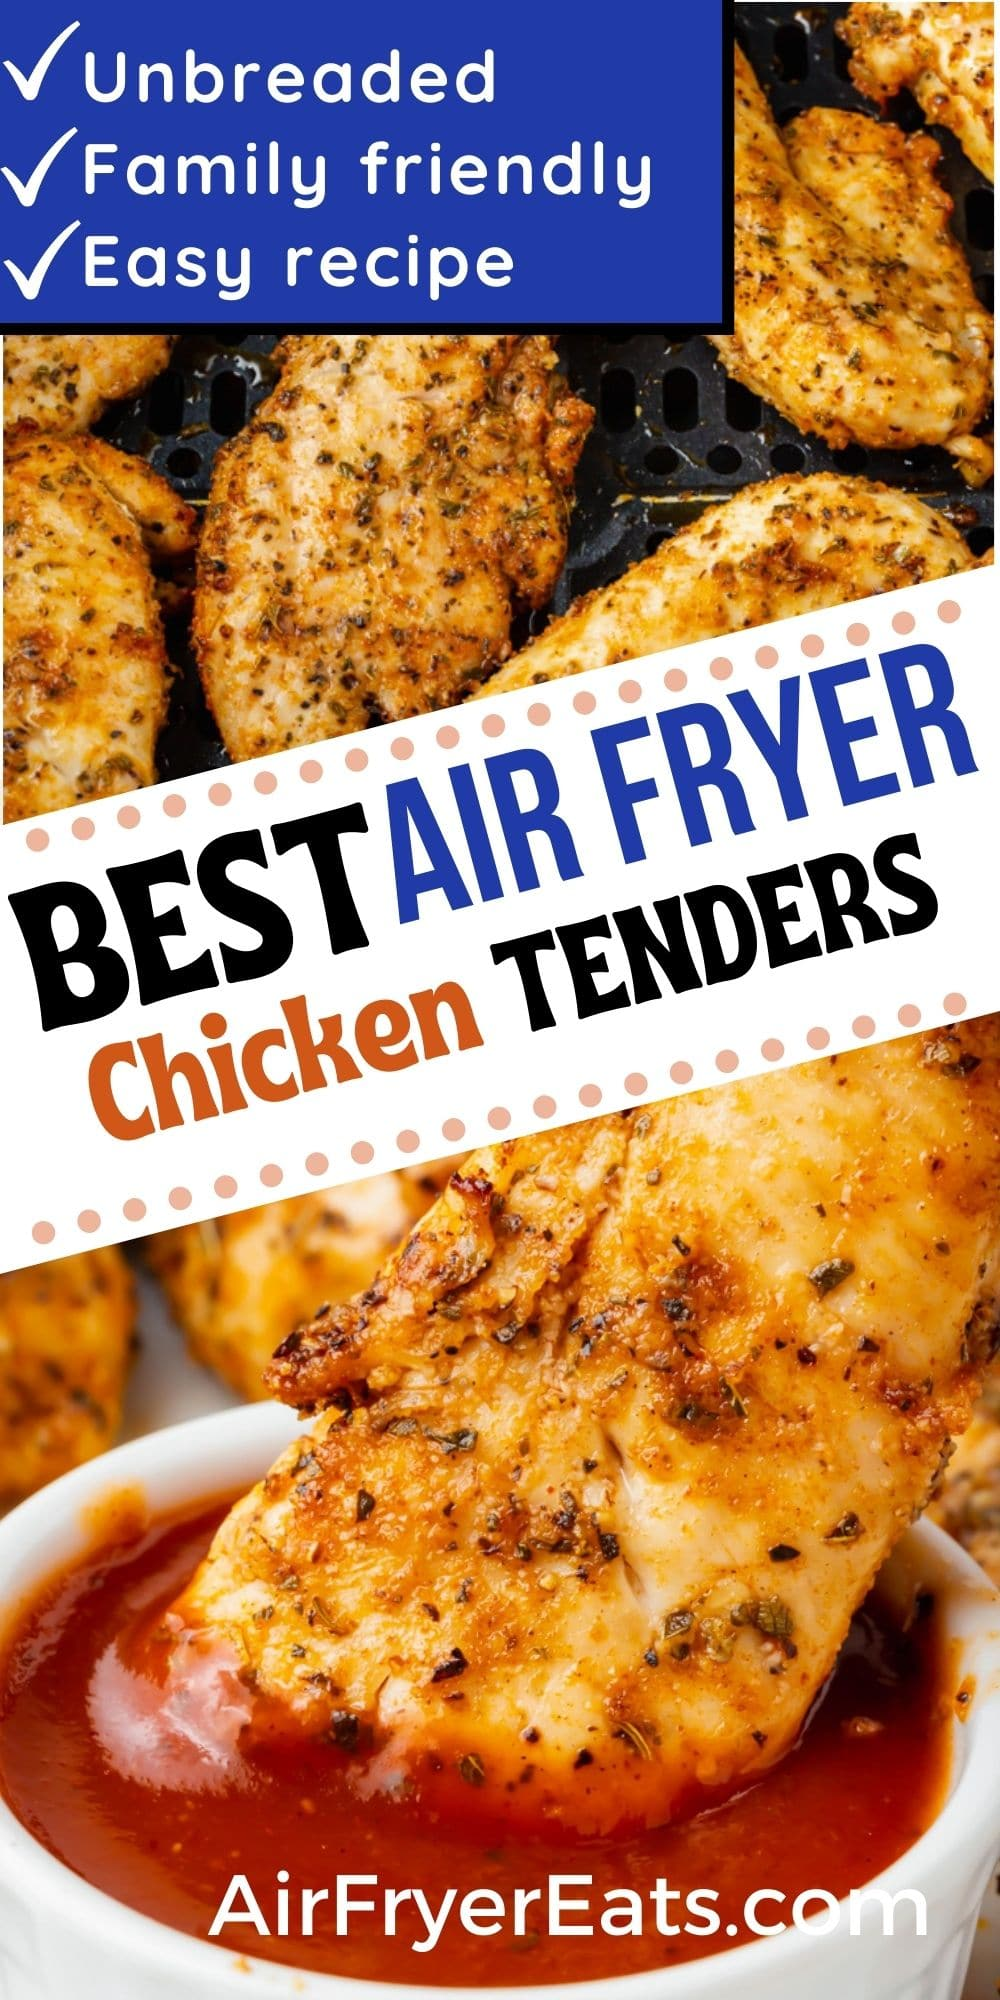 Air Fryer Chicken Tenders (Unbreaded) is the best and easiest way to cook chicken in the air fryer. These unbreaded chicken tenders in the air fryer are perfectly seasoned with herbs and spices and cook in just 10 minutes. Dinner has never been so good! #airfryer #chickentenders via @vegetarianmamma